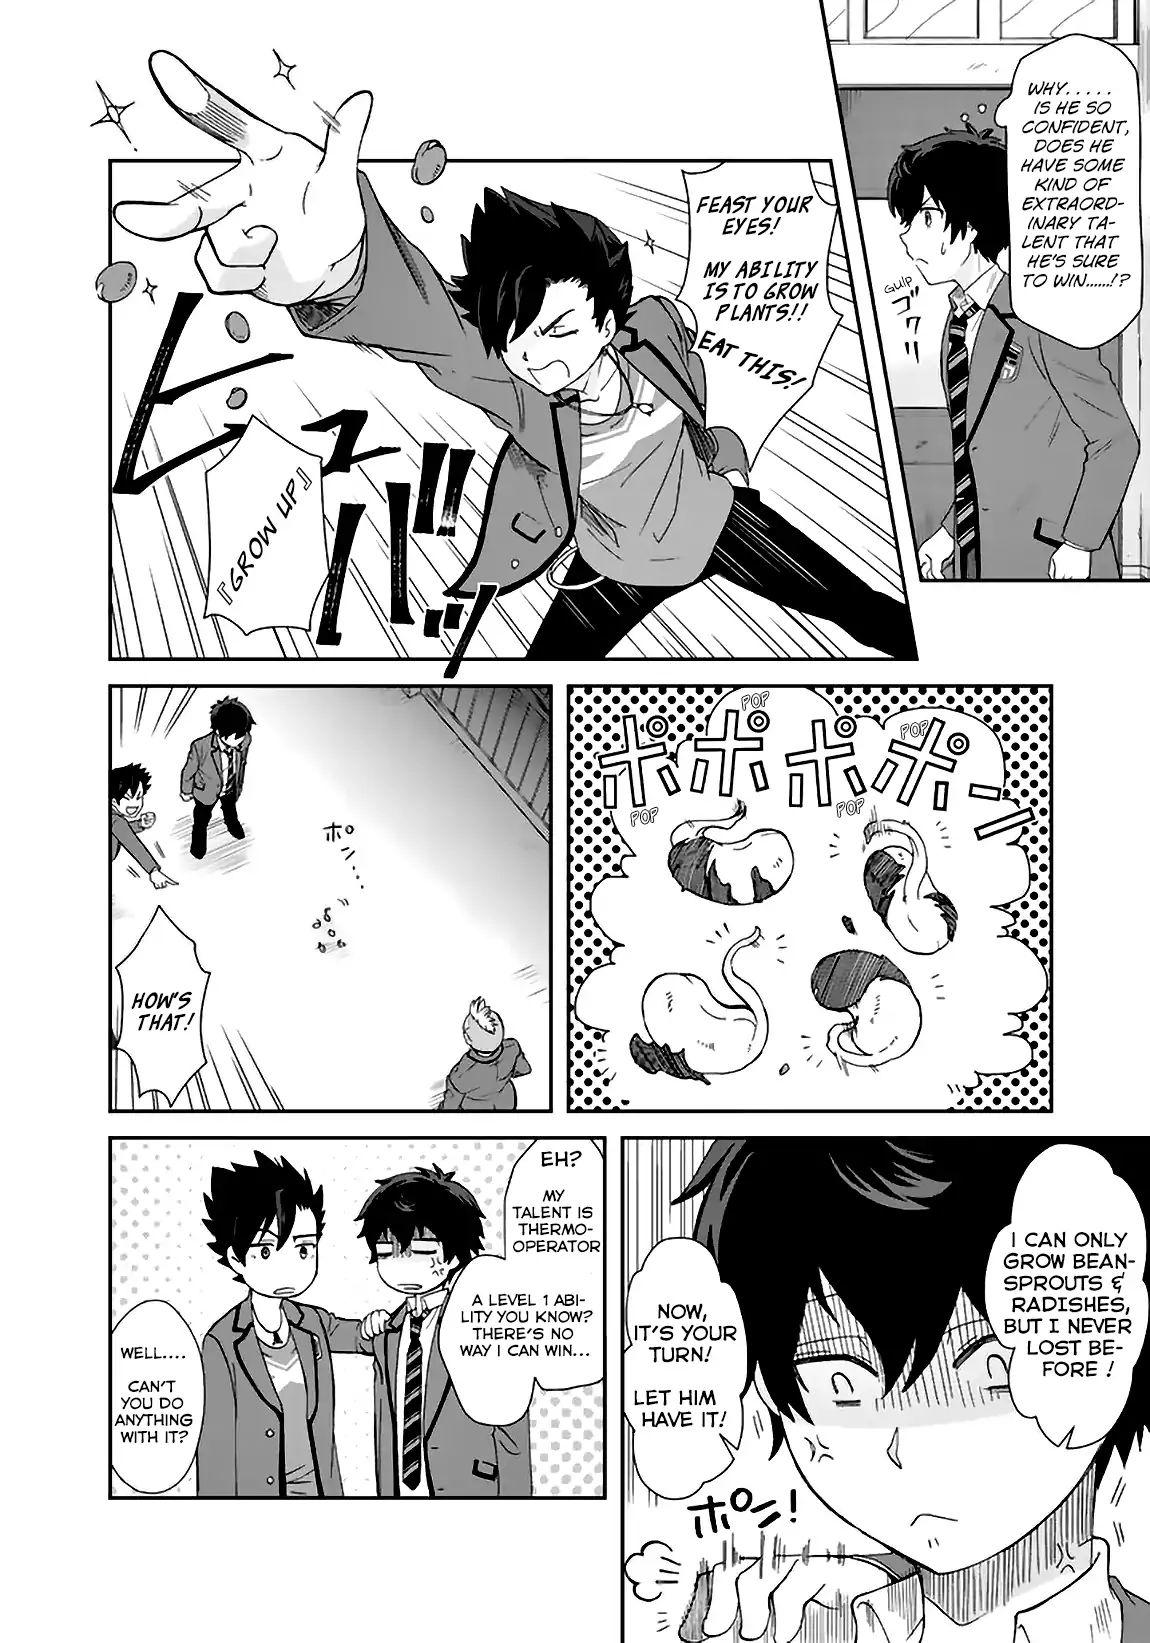 I, Who Possessed A Trash Skill 【Thermal Operator】, Became Unrivaled. Chapter 2 page 8 - Mangakakalots.com